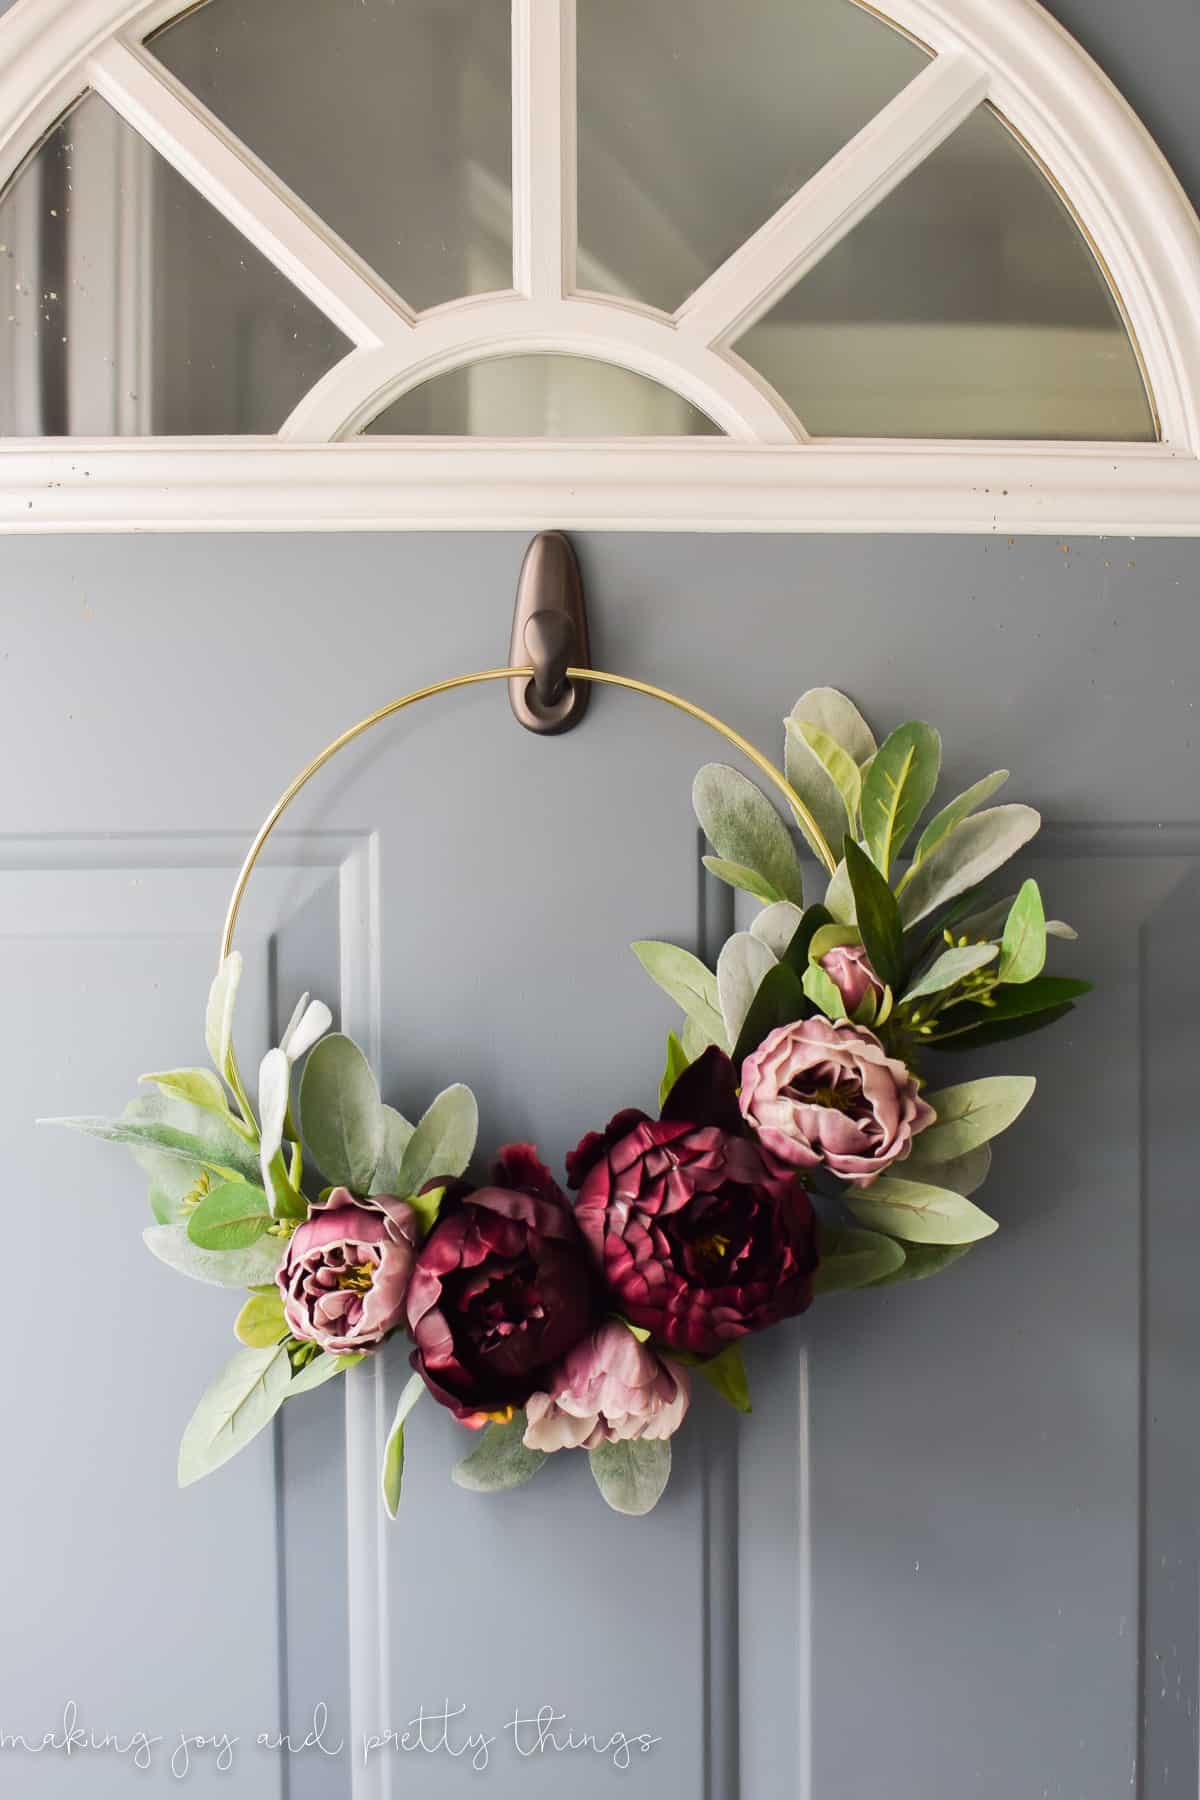 Fall hoop wreath with purple flowers and greenery